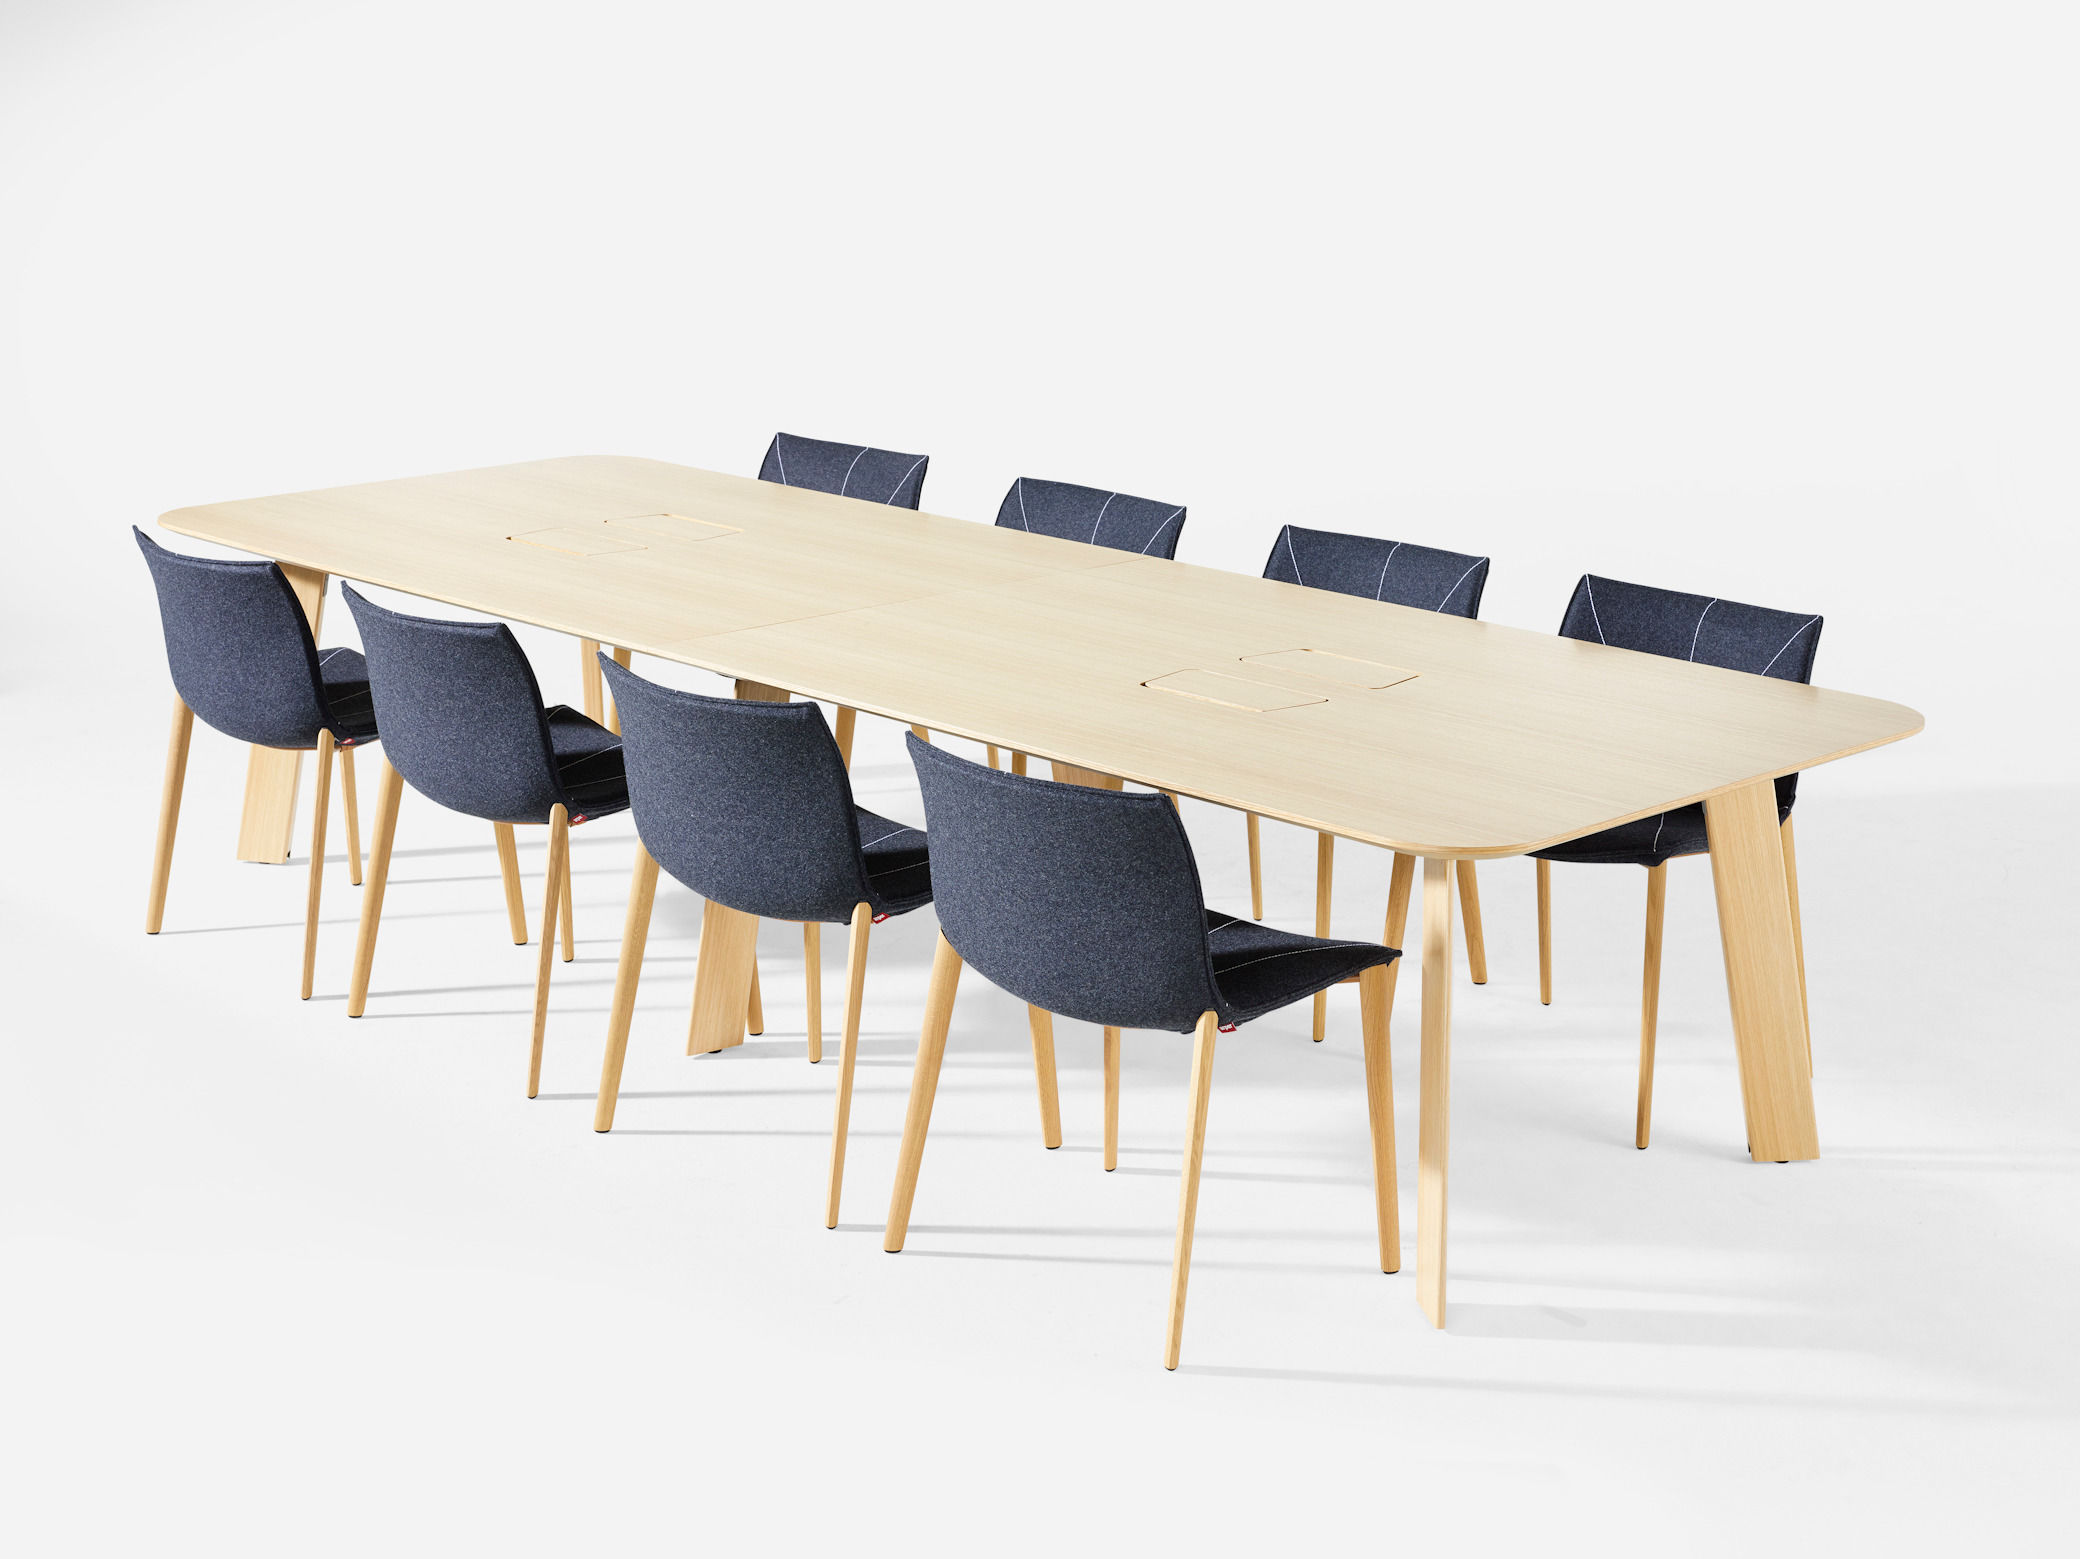 office dining table. Blade Table By Thinking Works Office Dining